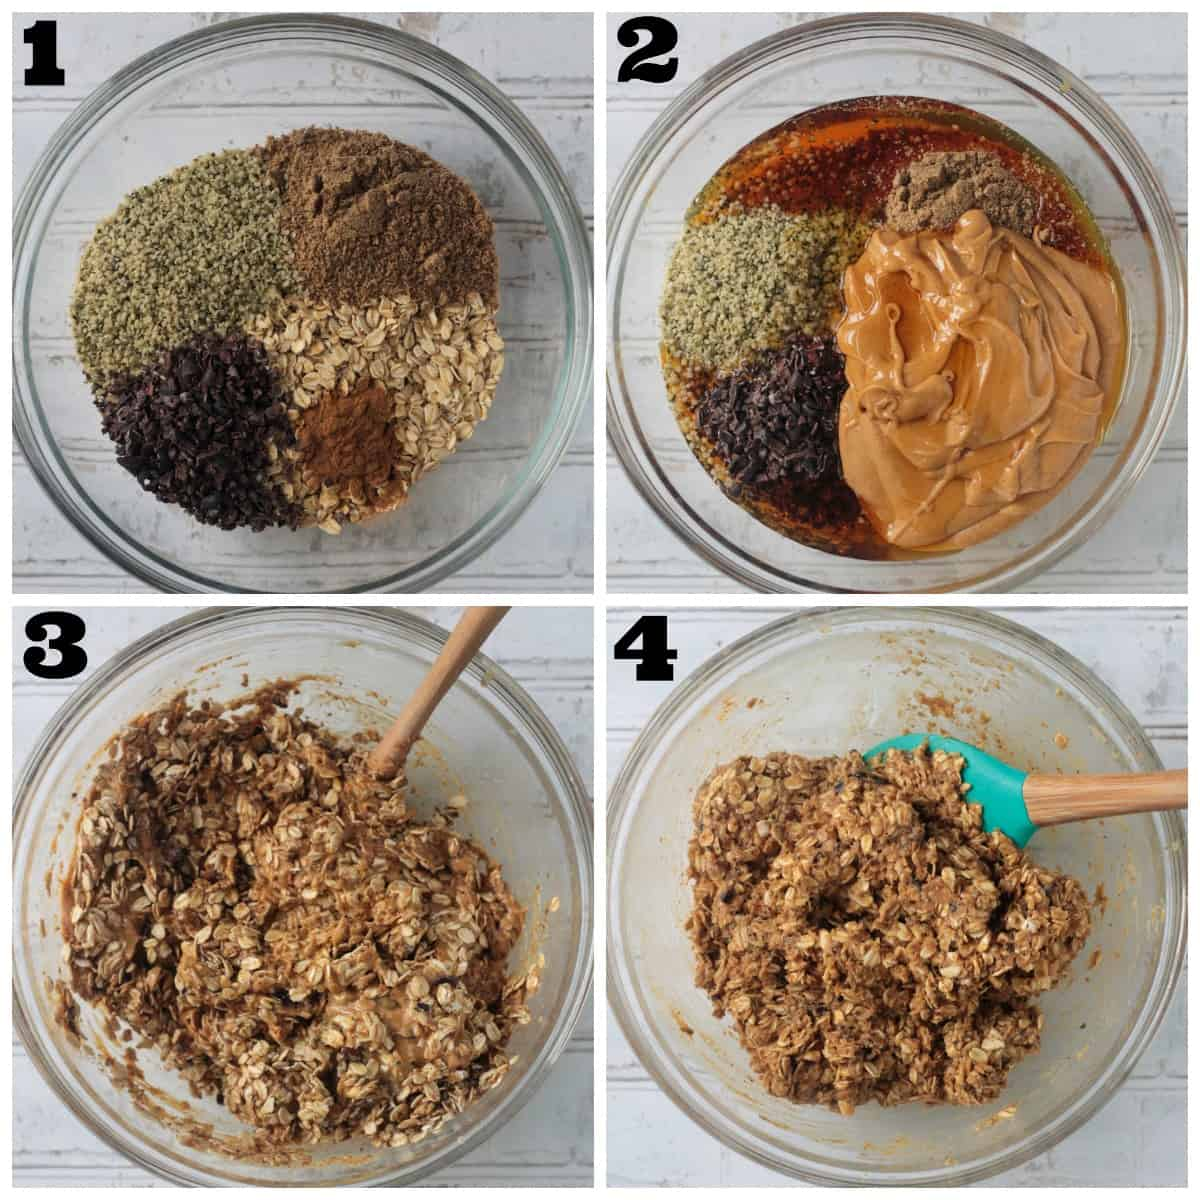 4 photo collage of mixing the ingredients to form a dough.